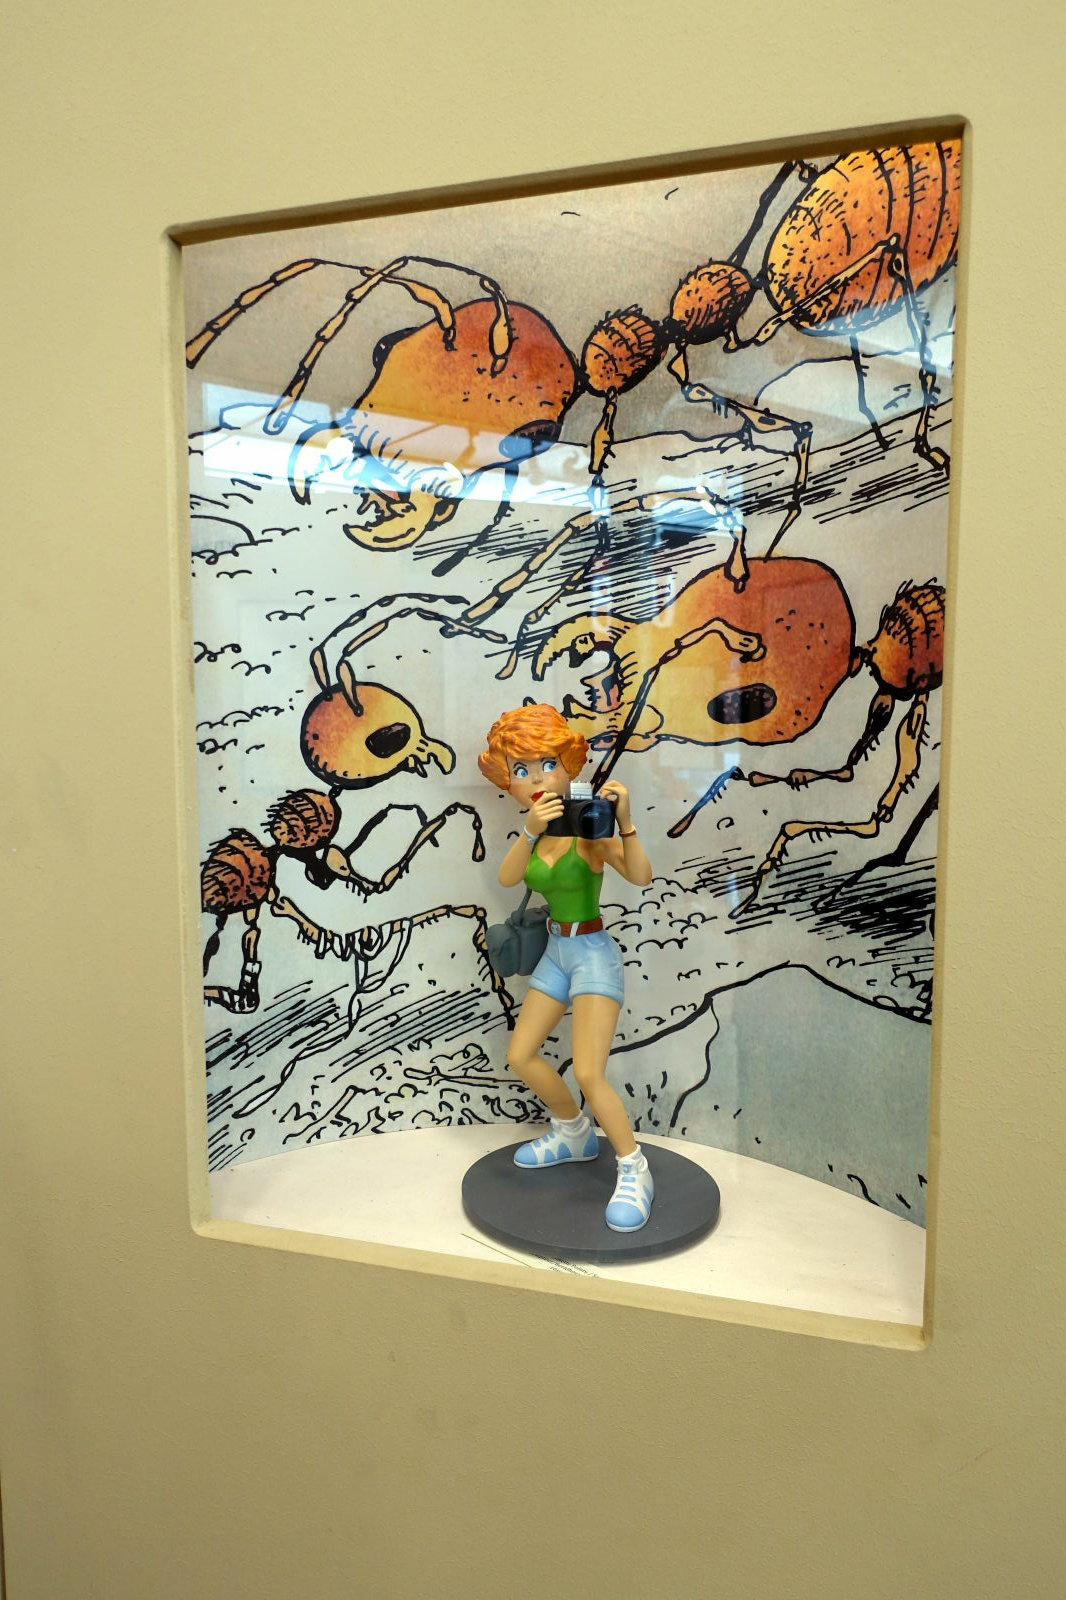 Part of the exhibition devoted to Marc Wasterlain. Jeanette Pointu is one of his most famous characters.